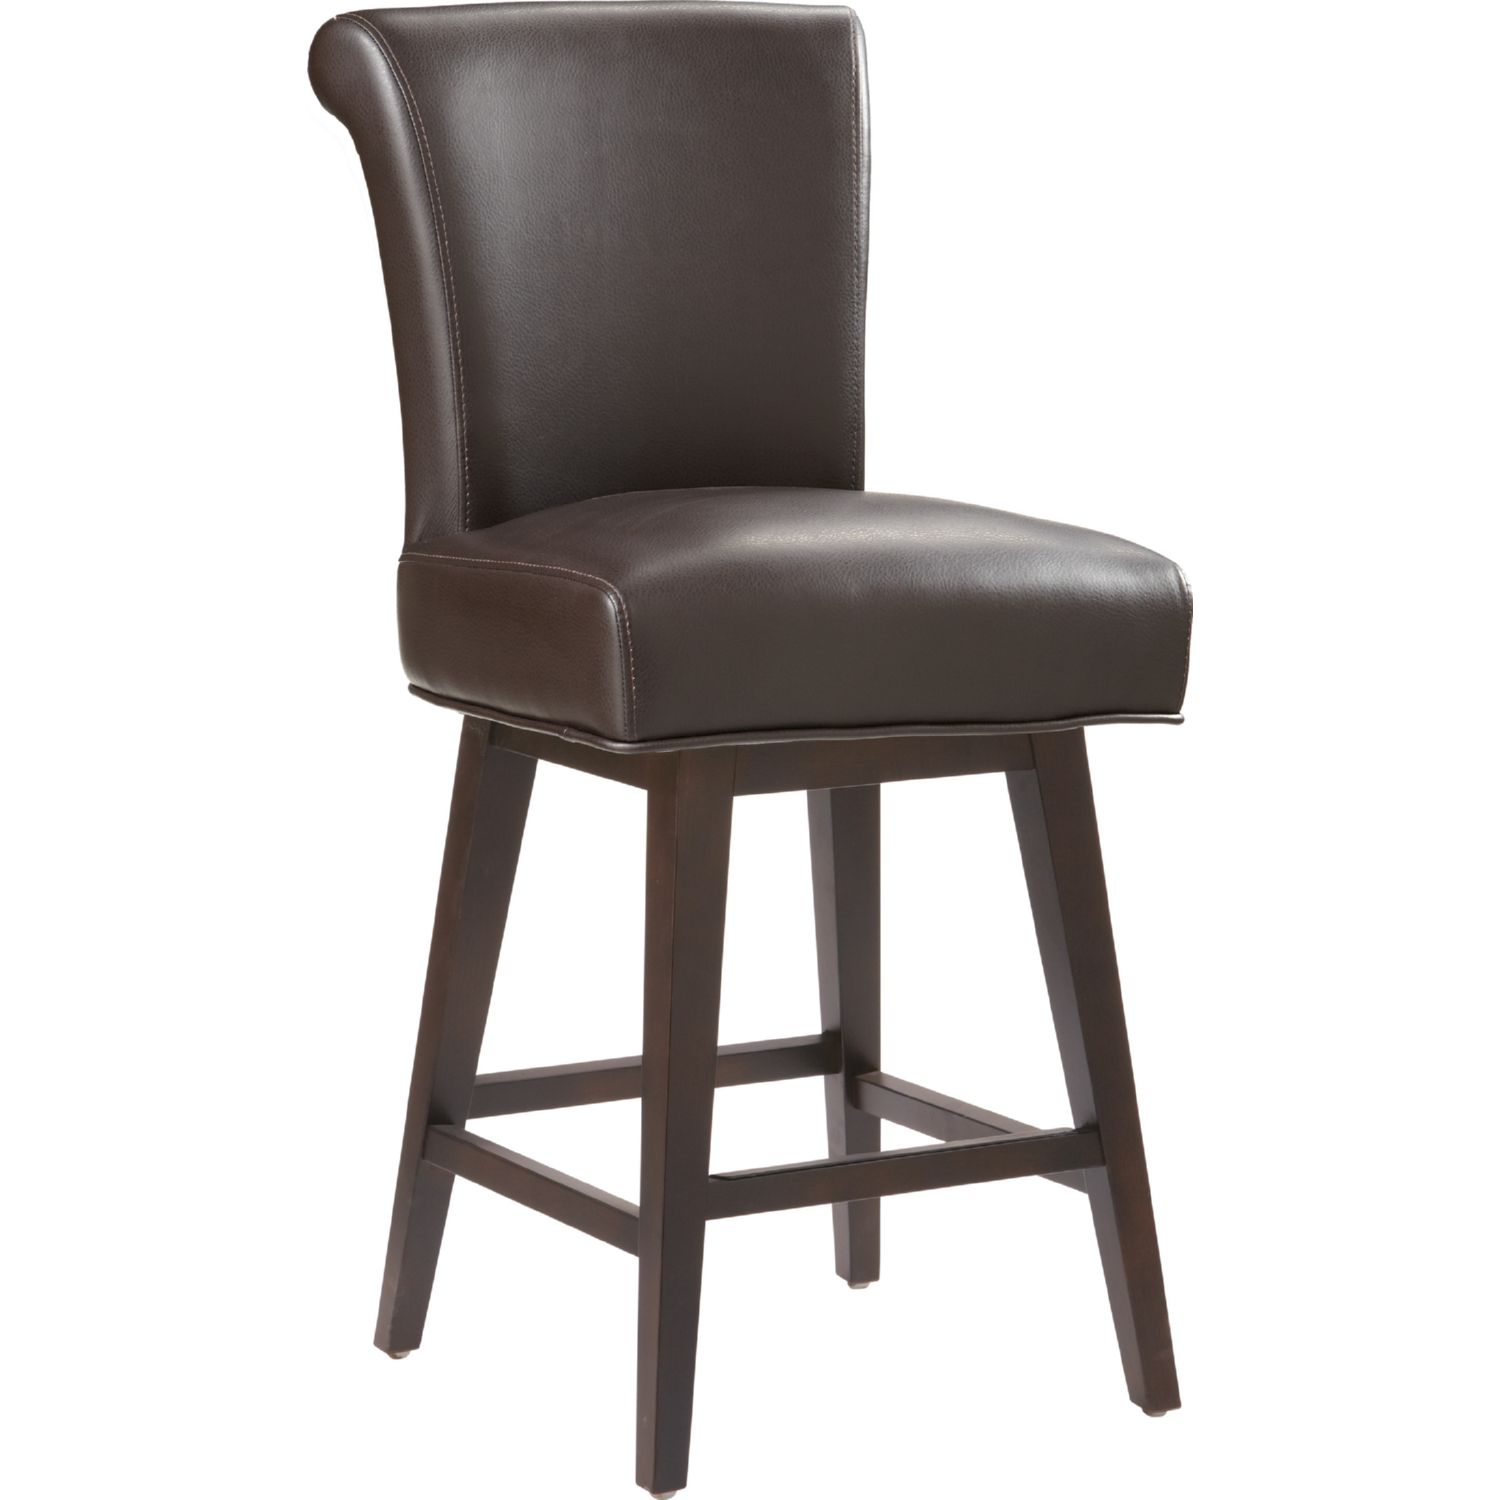 Sunpan 74921 Hamlet Swivel Counter Height Stool In Brown